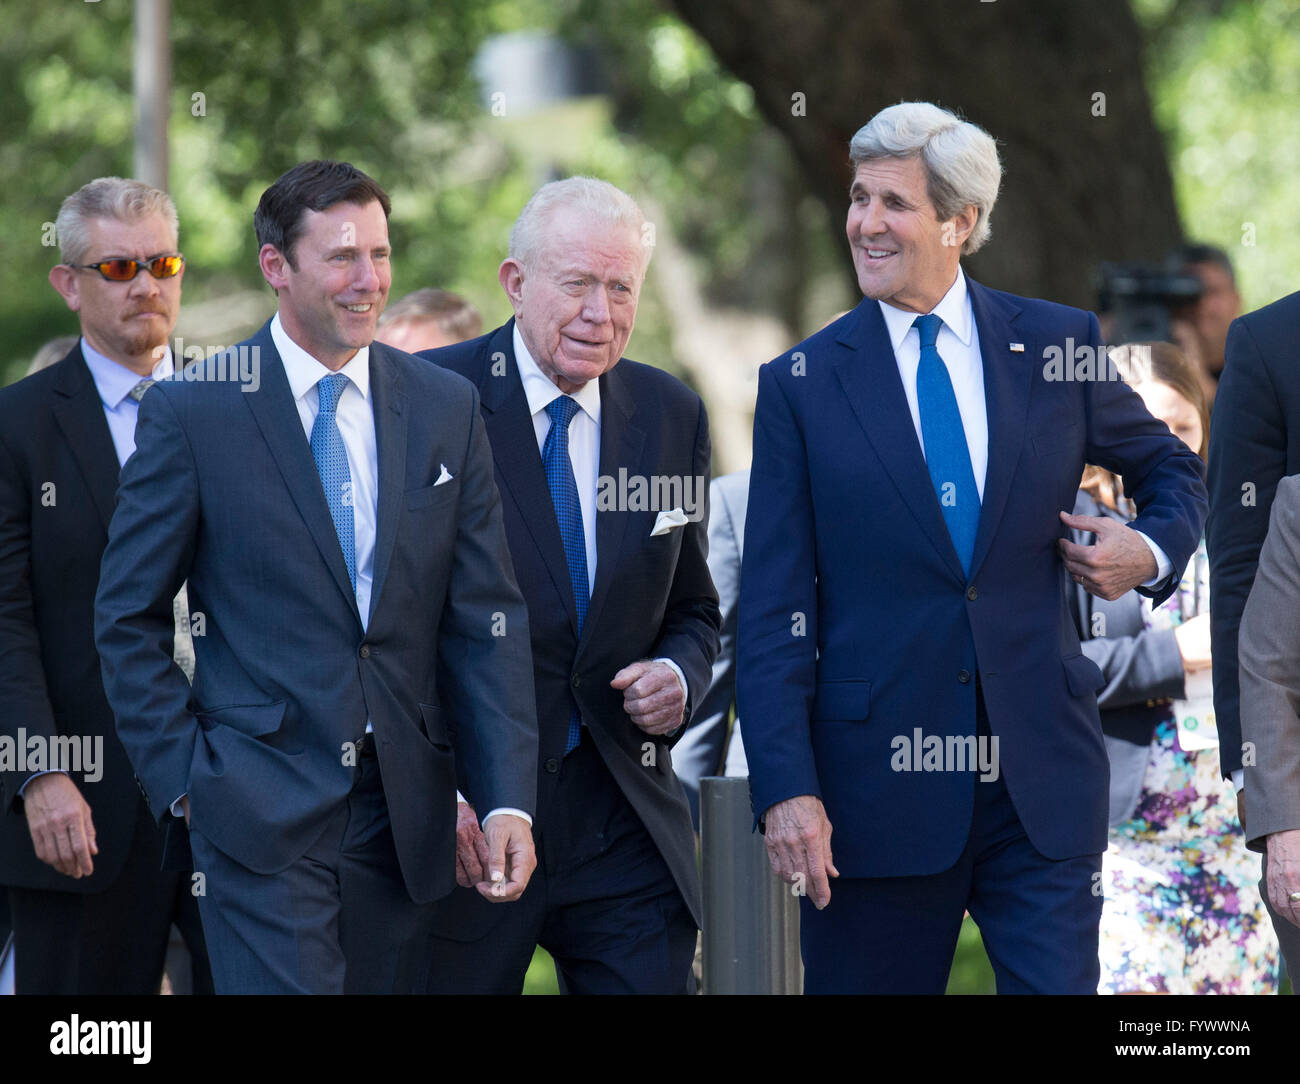 U.S. Secretary of State John Kerry, center, arrives at the LBJ Library for a keynote speech during the Vietnam War Summit. Stock Photo